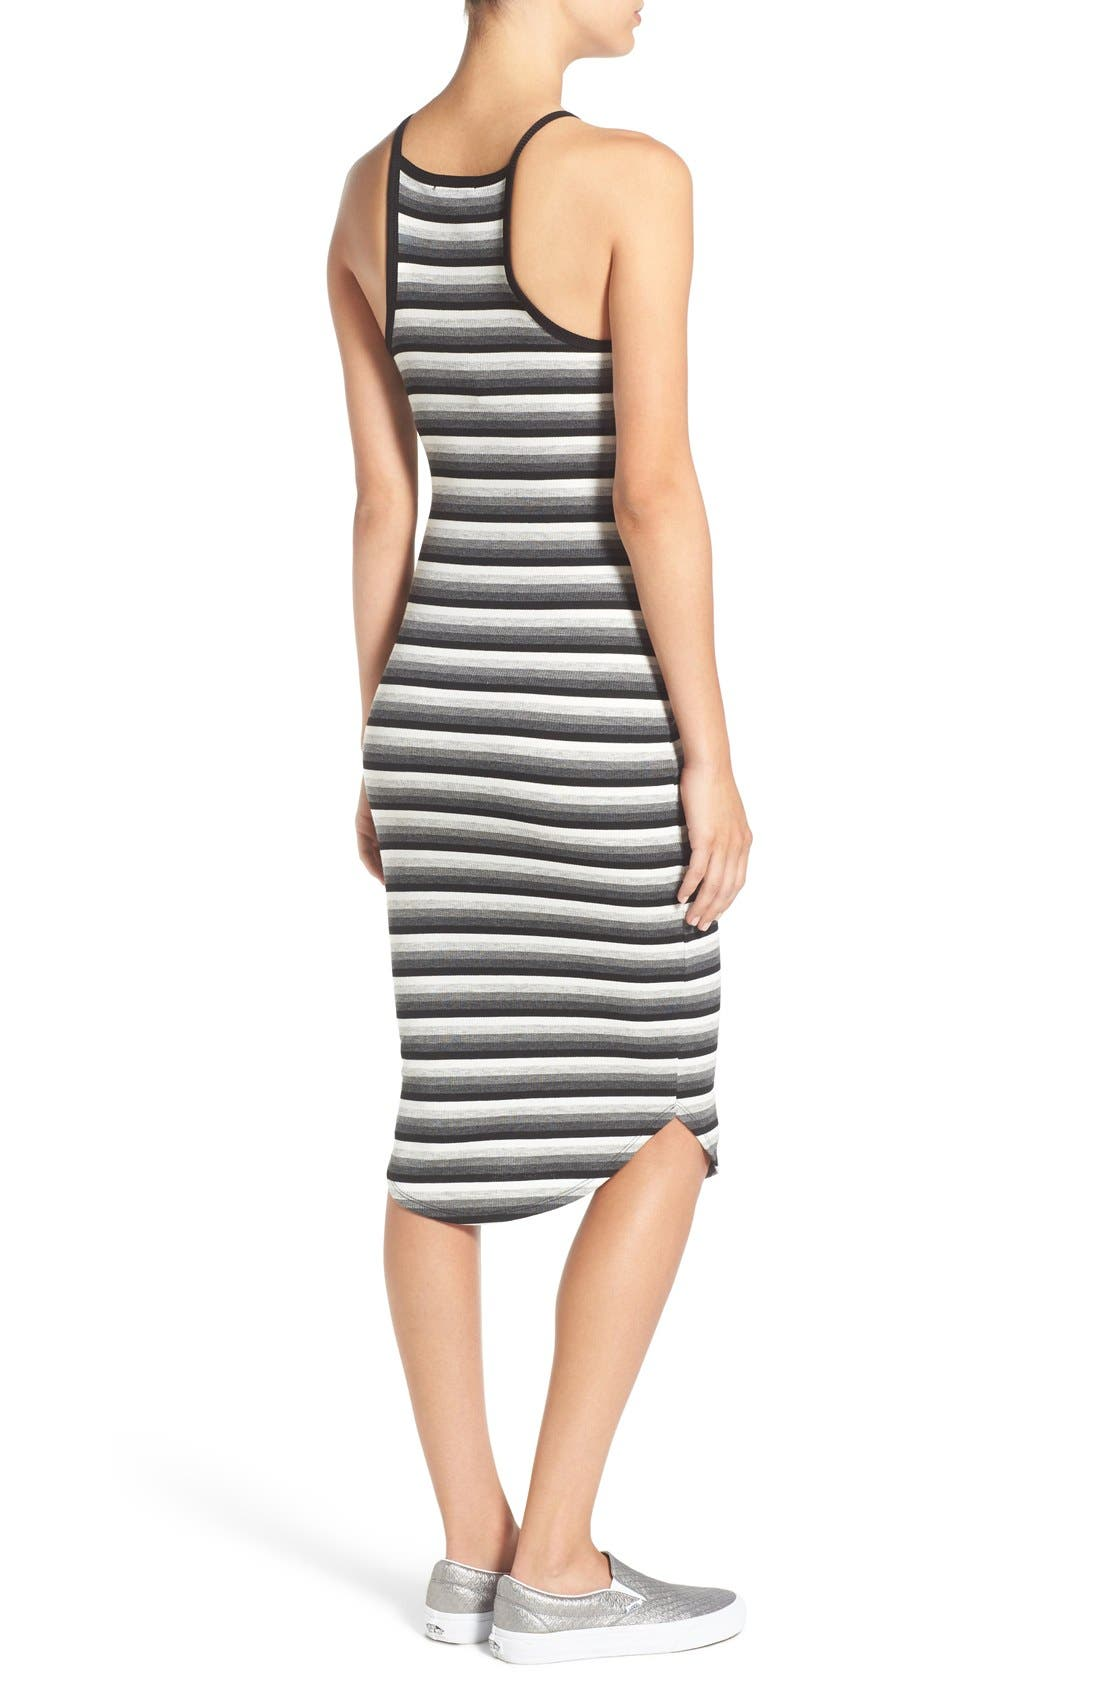 SOPRANO, Stripe Rib Knit Midi Dress, Alternate thumbnail 2, color, 001